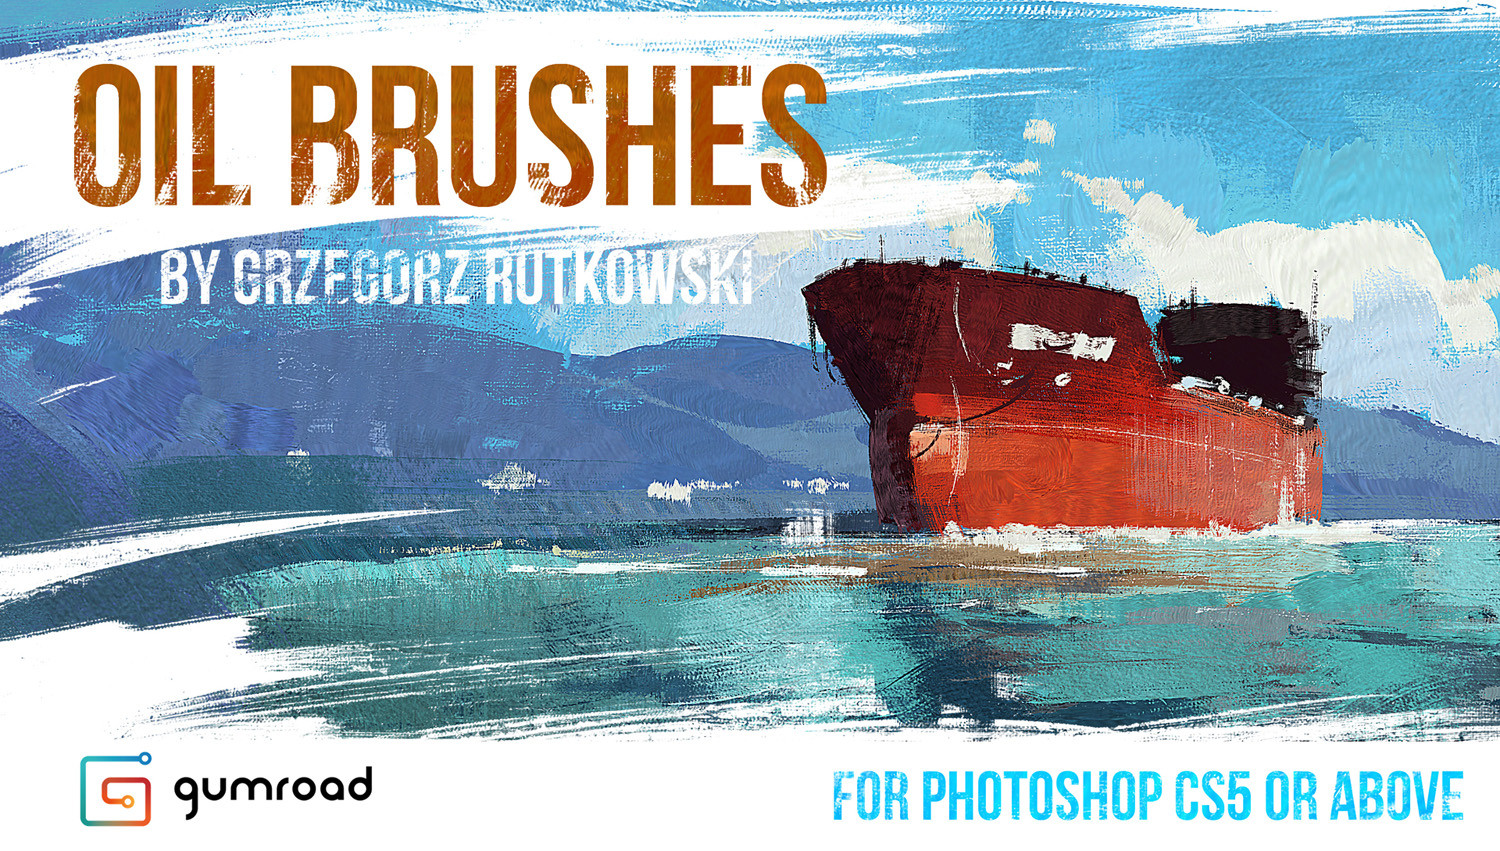 Greg rutkowski ship oil brushes 1500